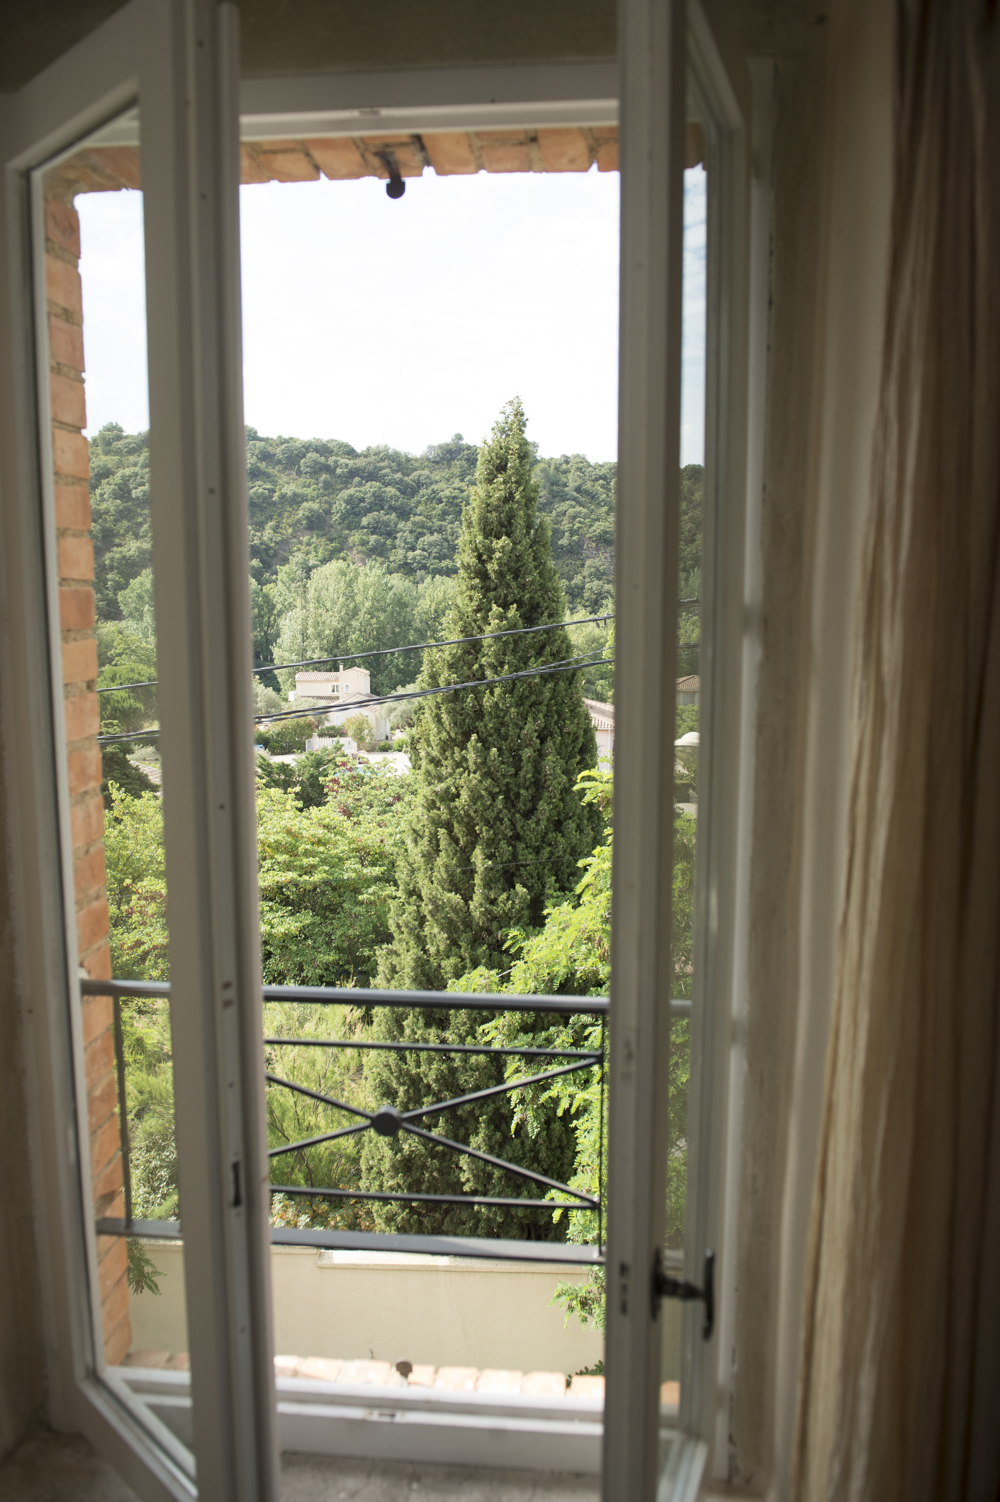 Haut_WindowView1.jpg